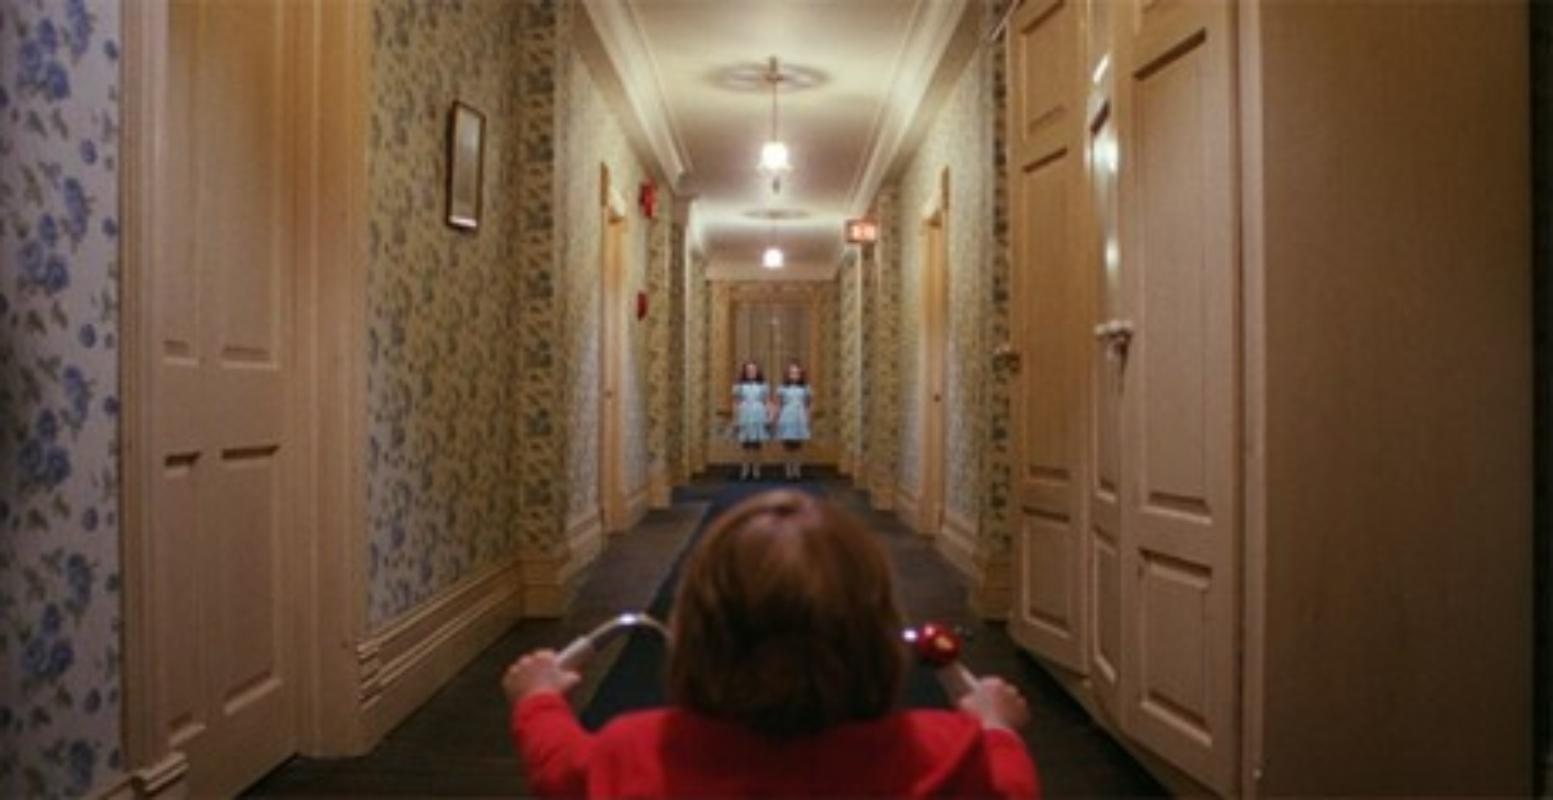 Stills from horror movies to not watch when home alone